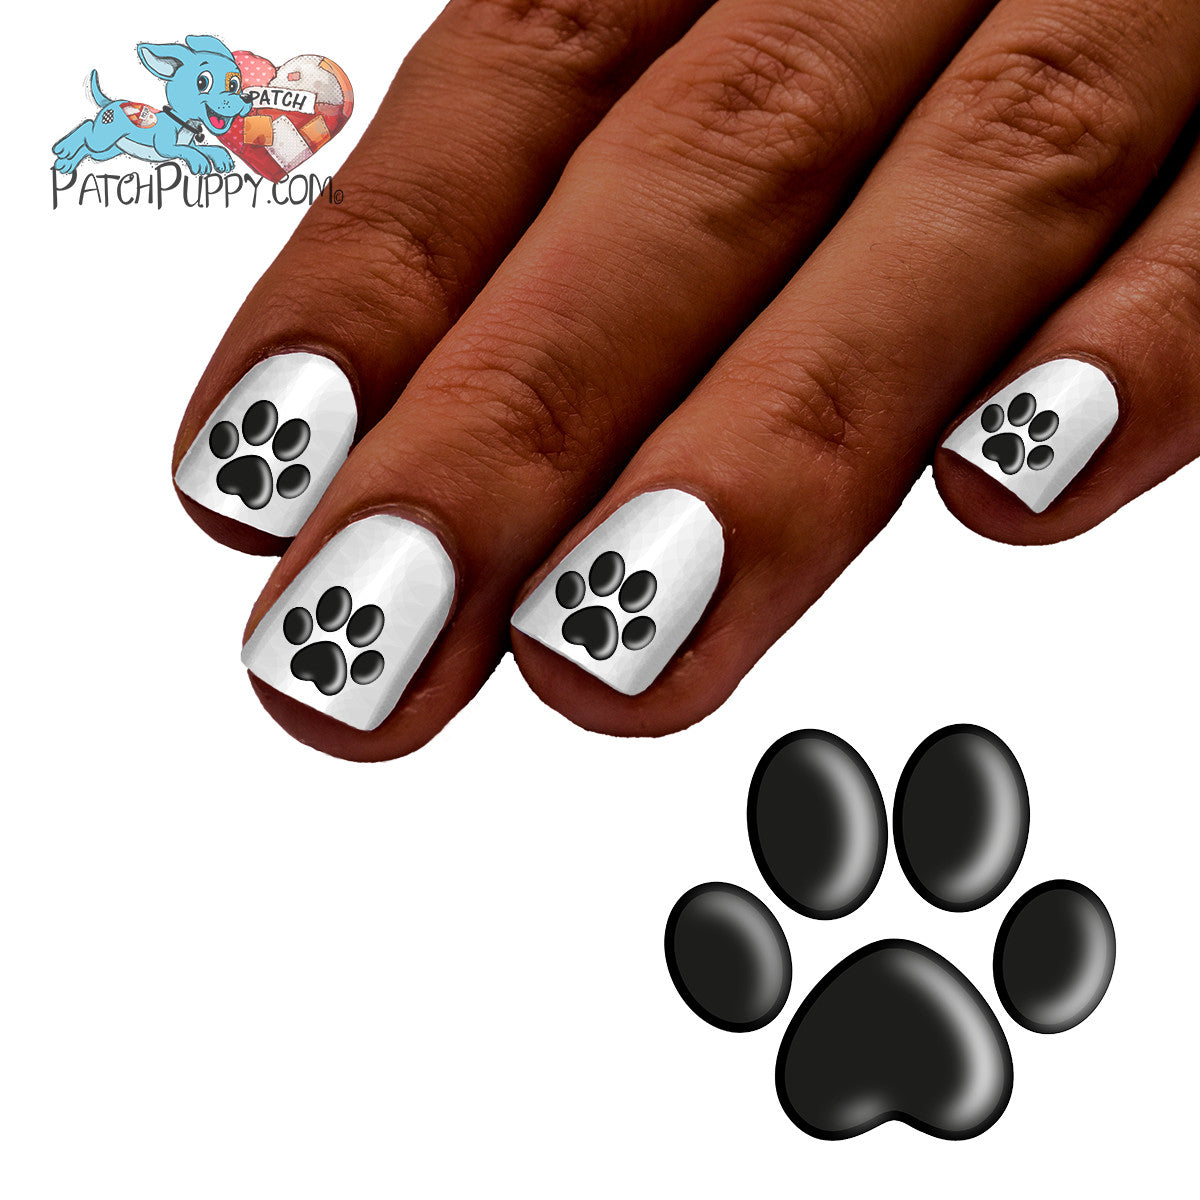 Shadow Paw Print Nail Art Decals (Now! 50% More FREE